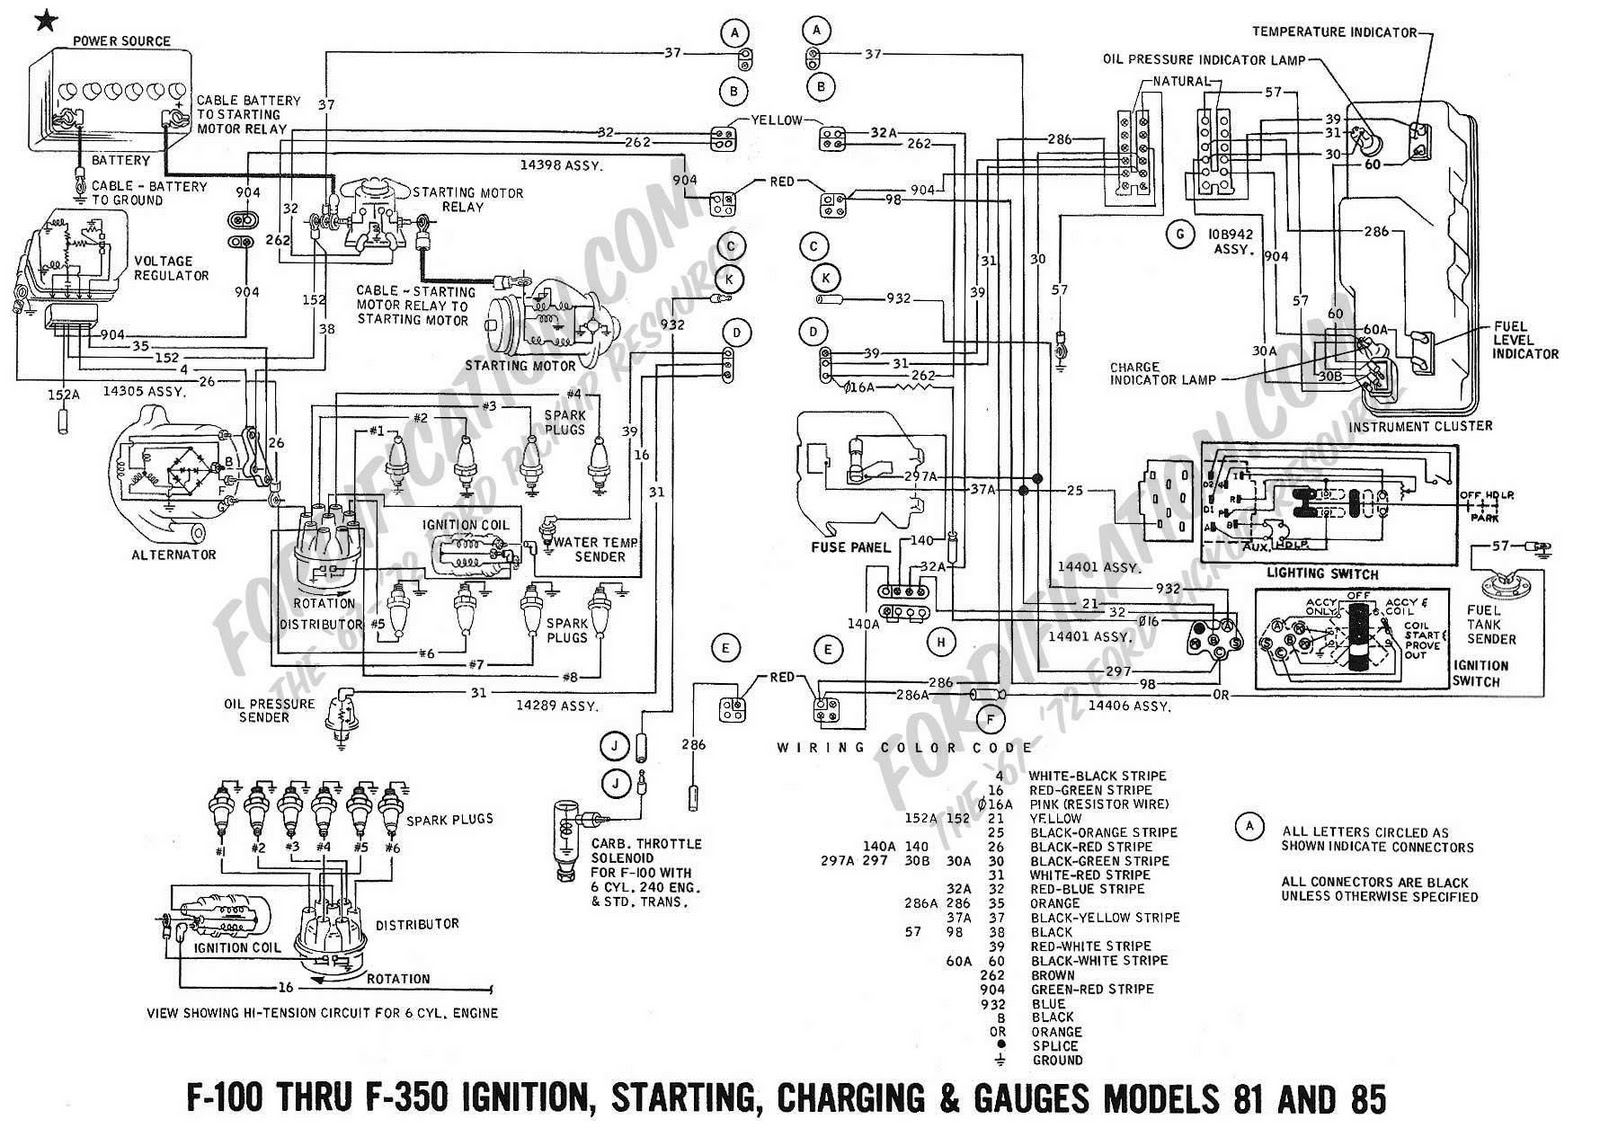 F100 Wiring Diagram On 1988 Chevy Pickup 350 Engine For 1989 Ford Electrical Easy Diagrams